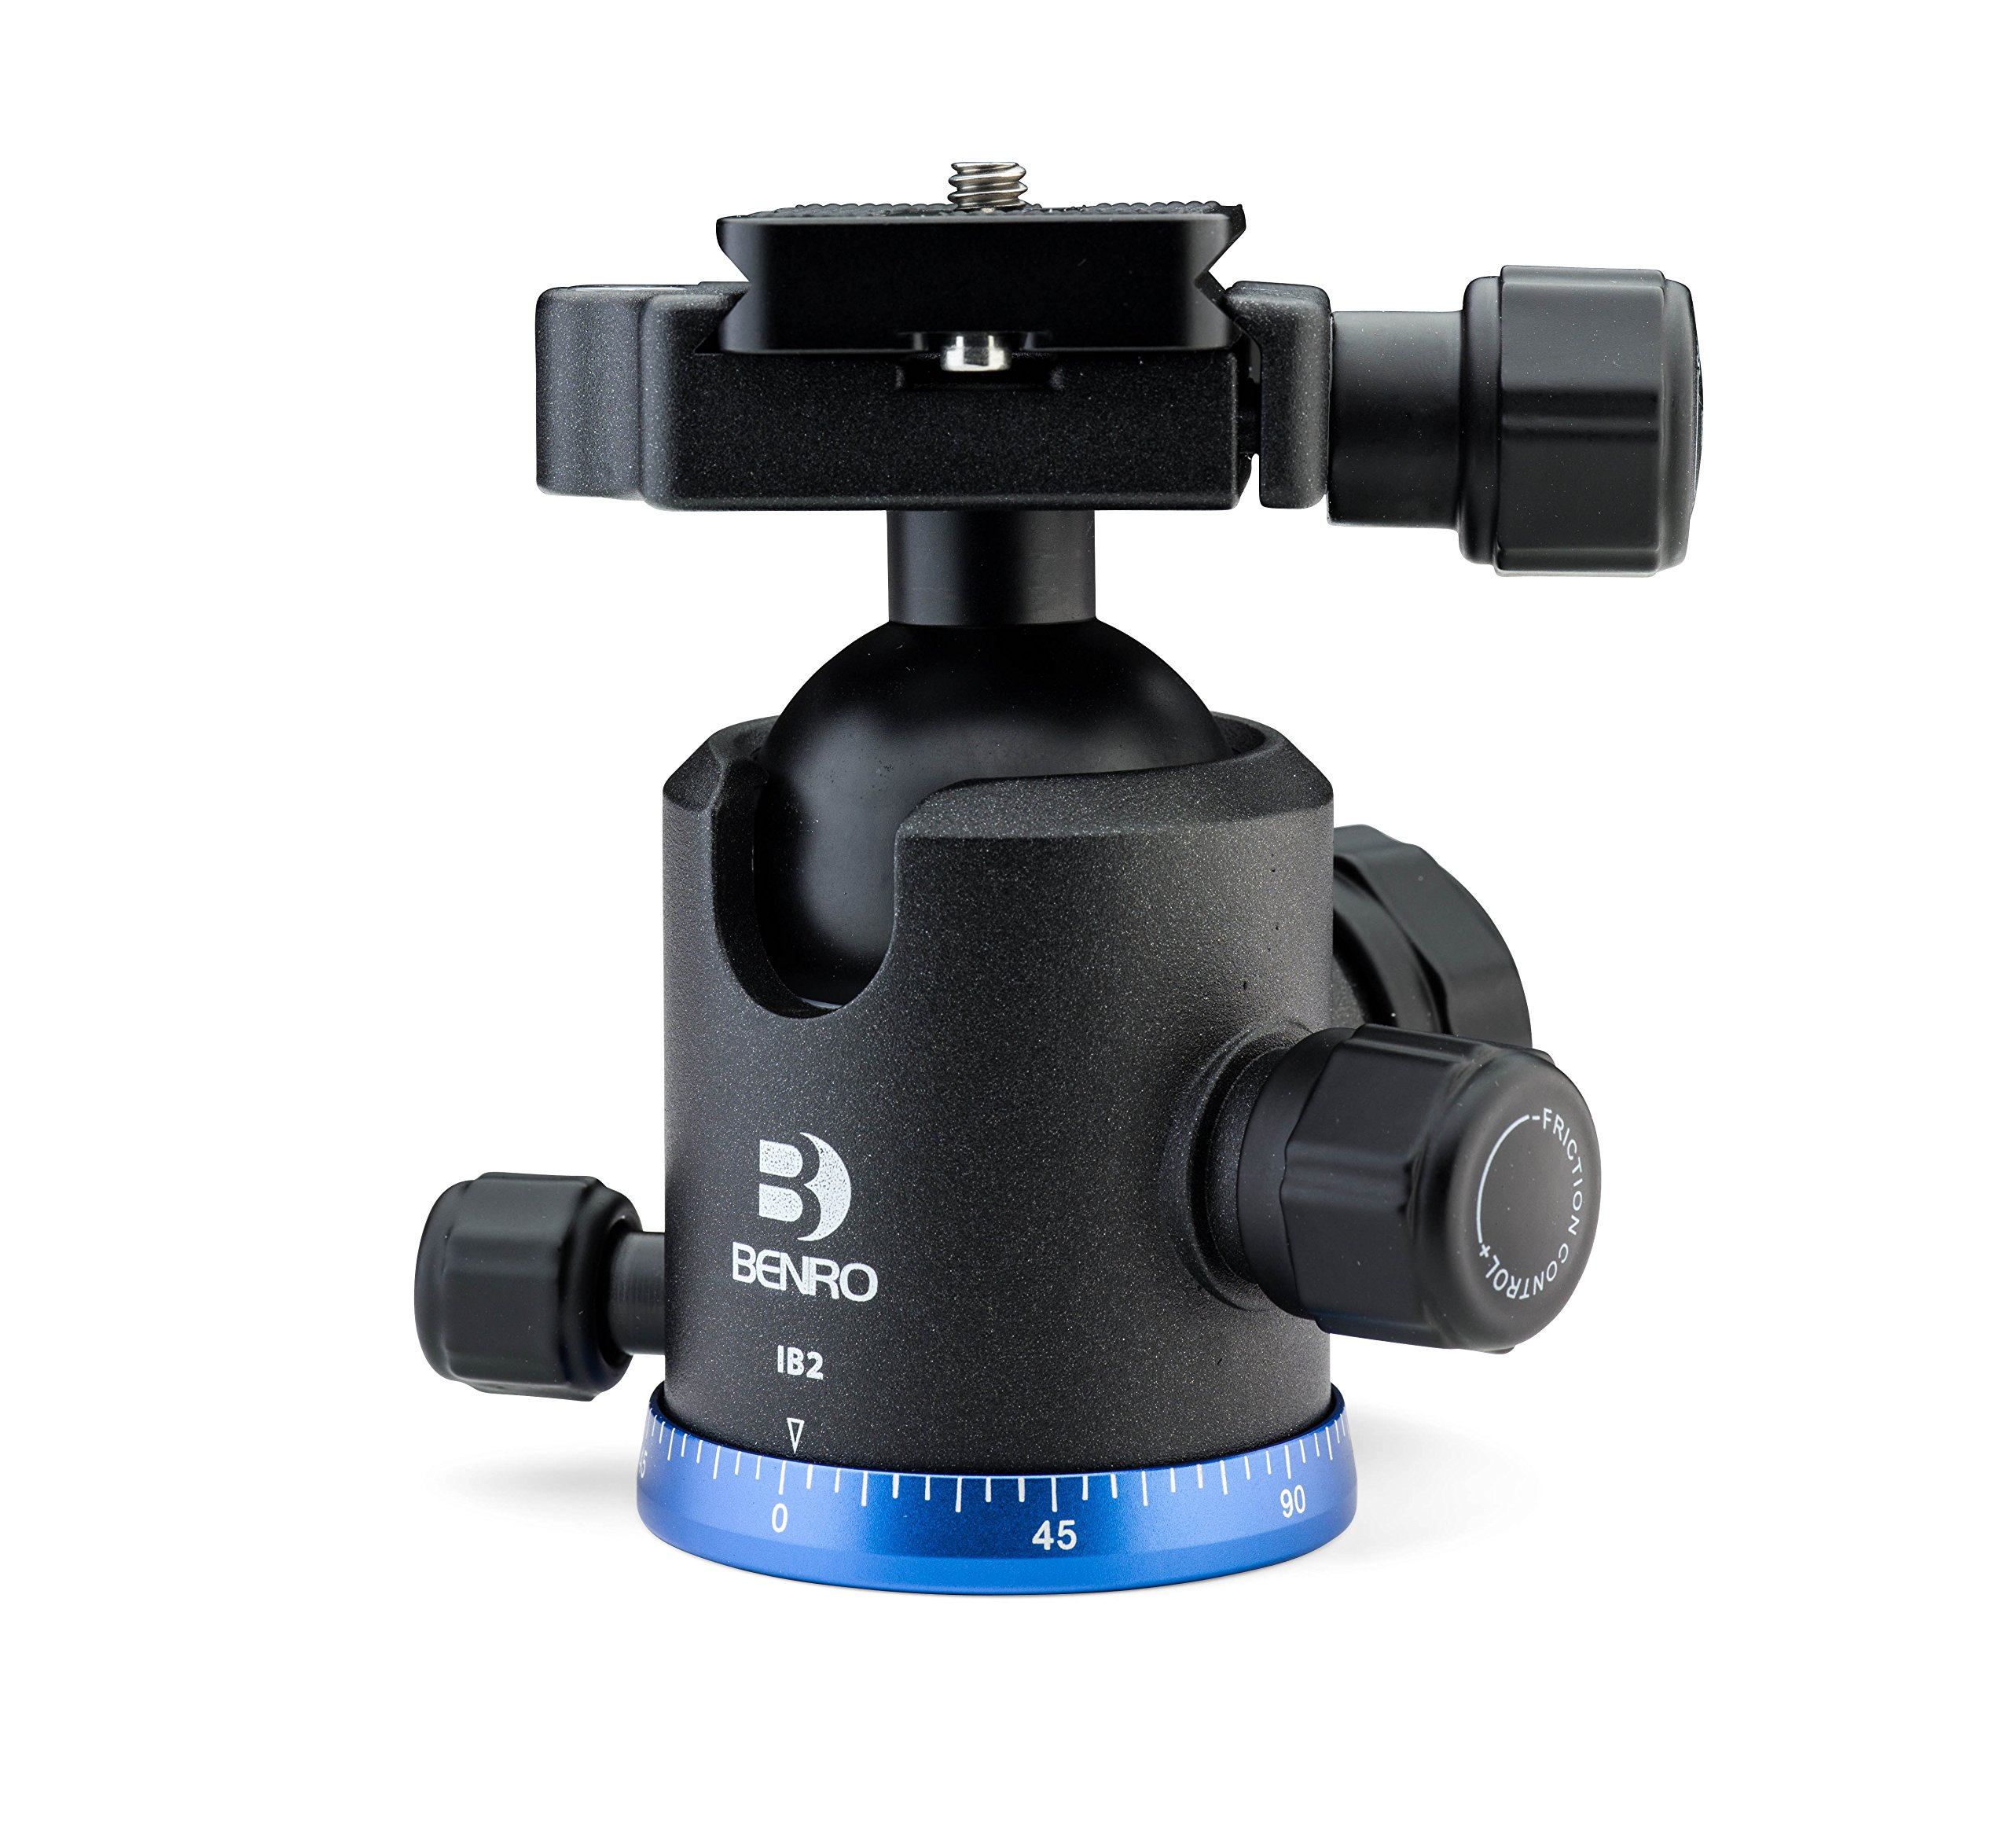 Benro Triple Action Ball Head w/ PU60 Quick Release Plate (IB2) by Benro